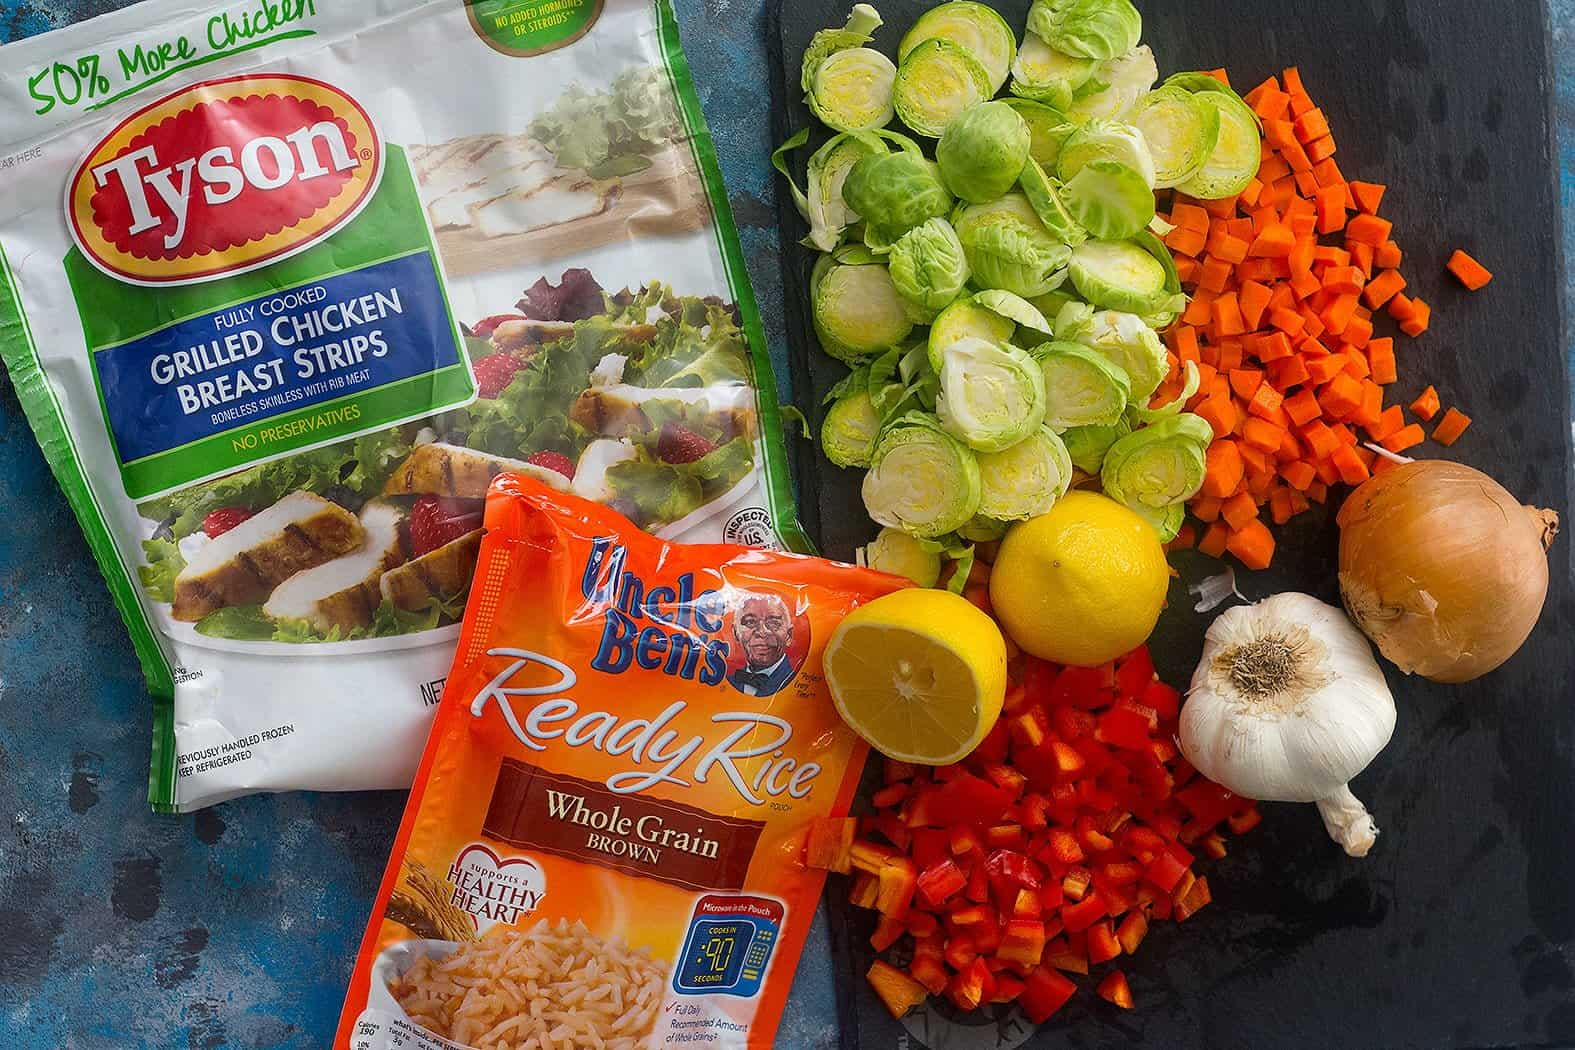 To make this easy skillet dinner, you need olive oil, onion, red bell pepper, carrots, garlic, brussels sprouts and spices, plus Tyson® Fully Cooked Refrigerated Grilled Chicken Breast Strips and Uncle Ben's® Ready Rice® Whole Grain Brown.